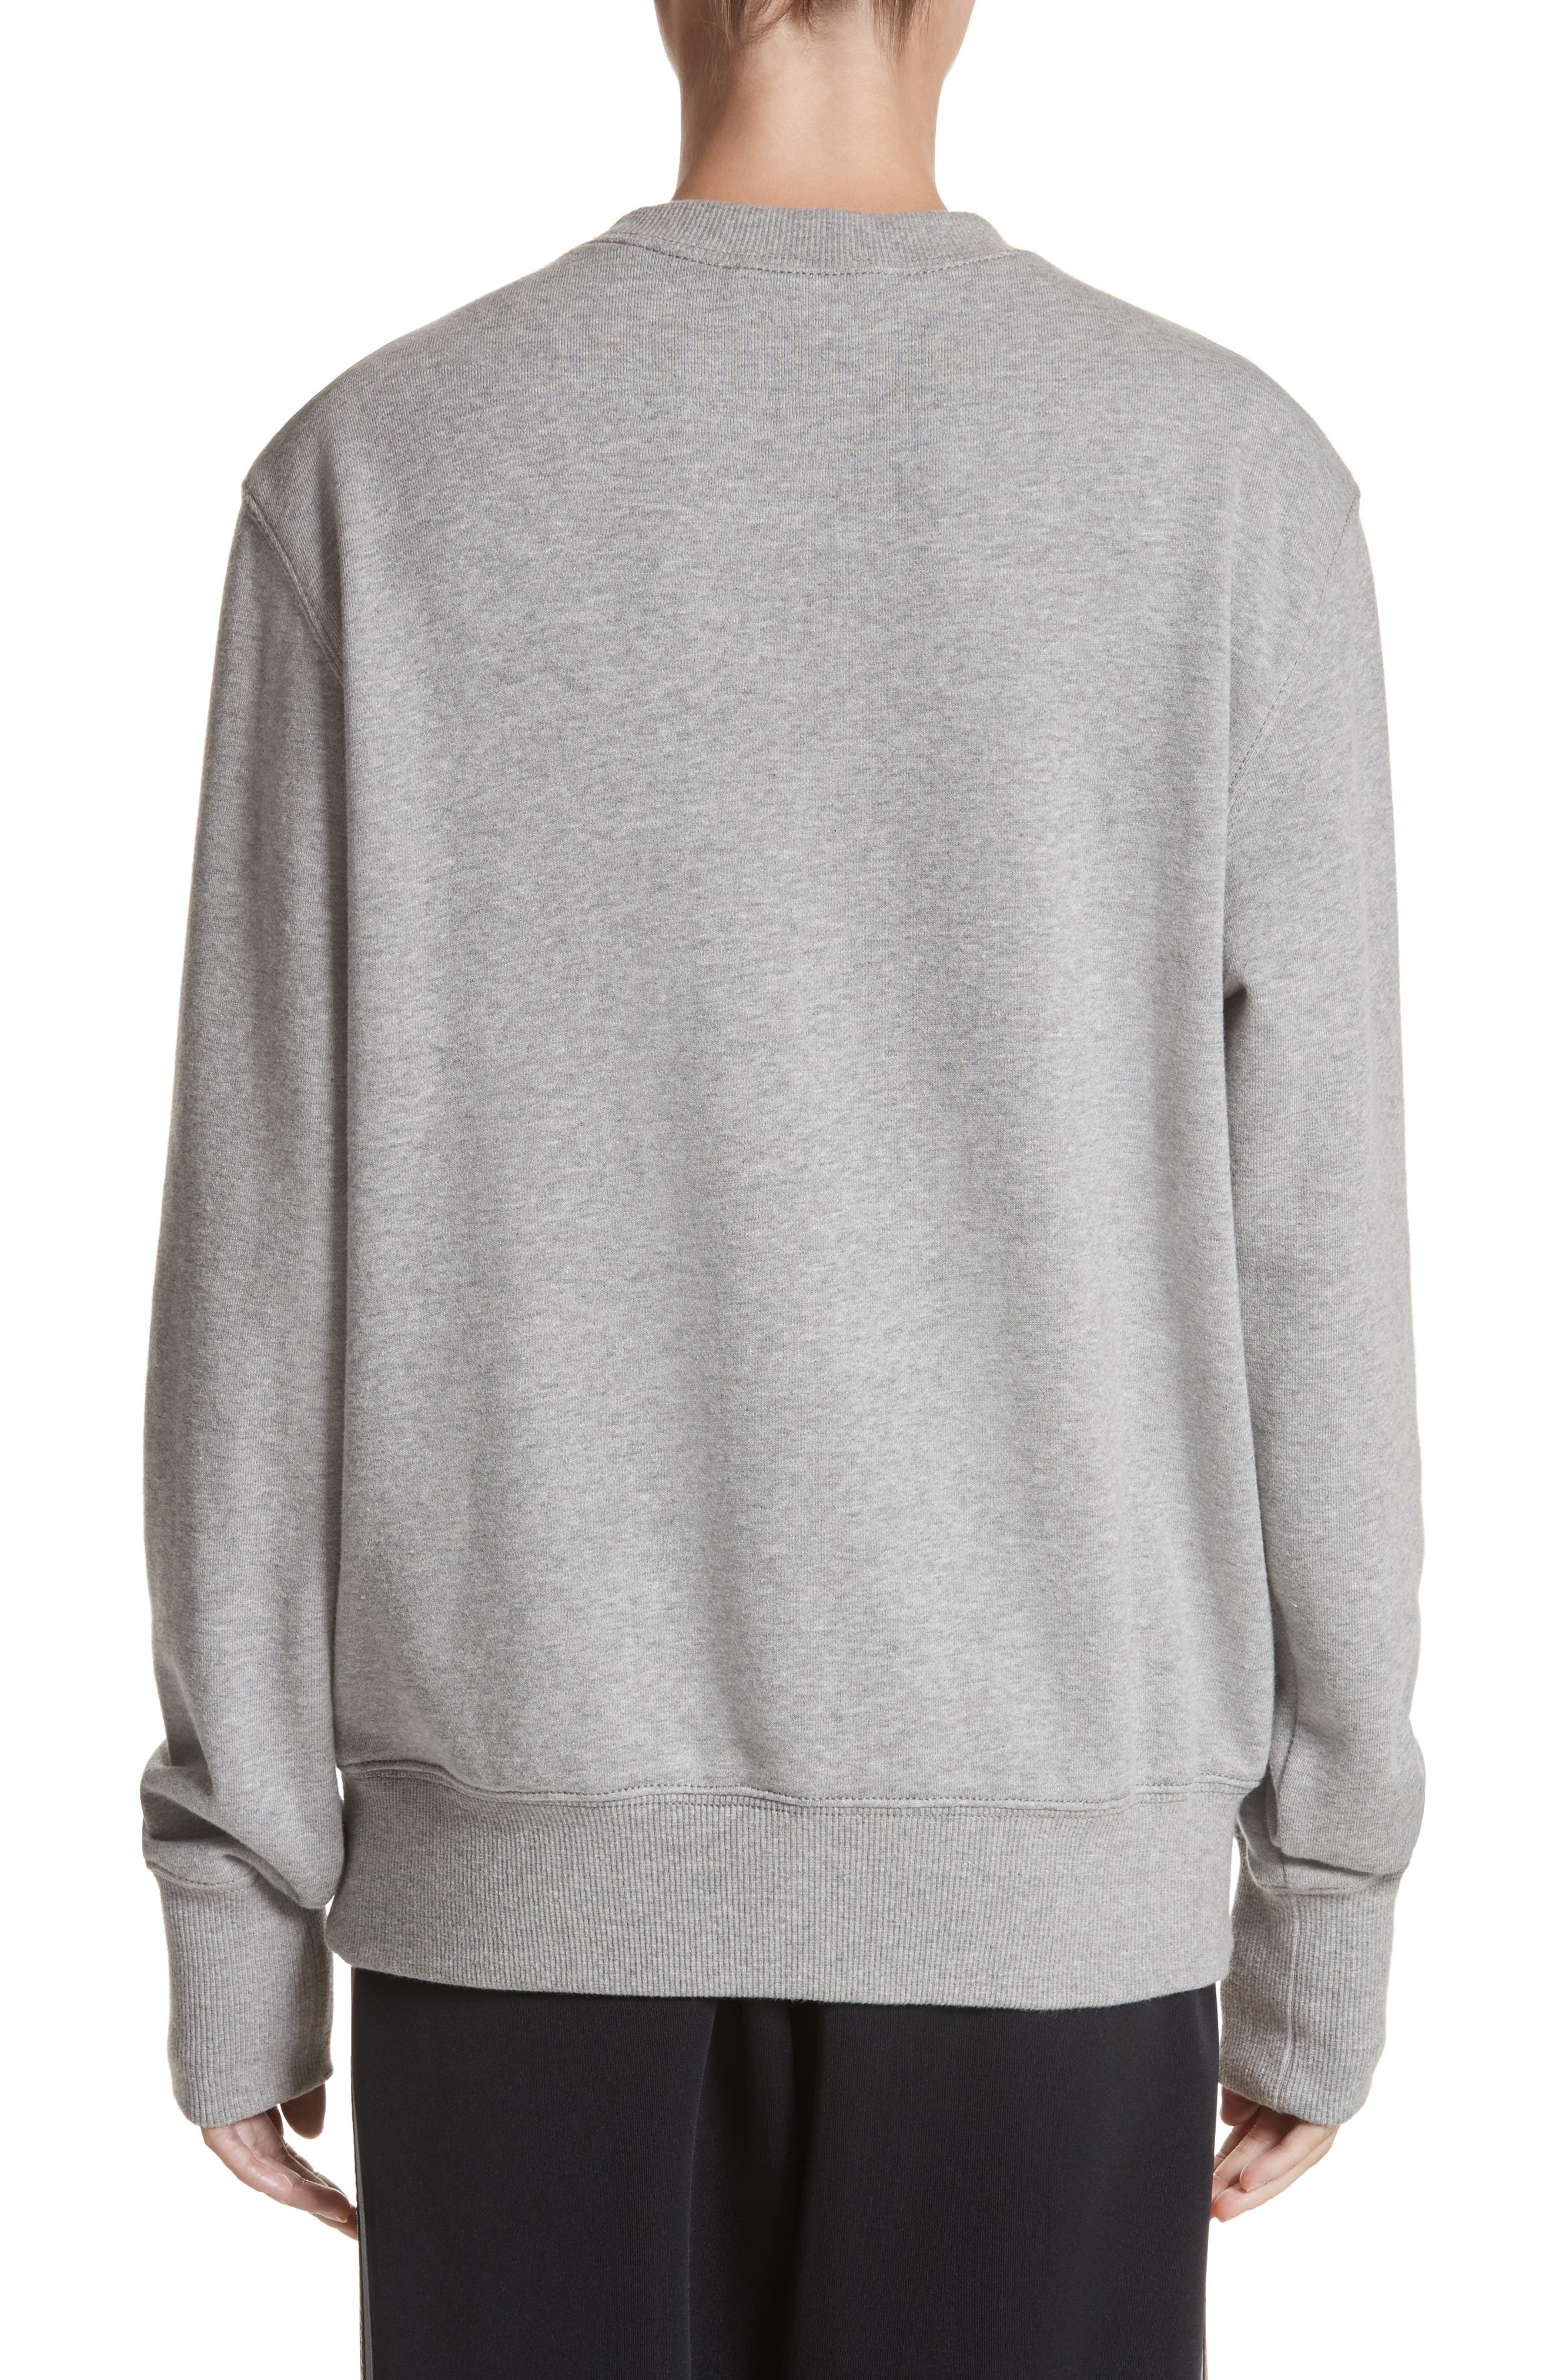 Logo Sweatshirt,                             Alternate thumbnail 2, color,                             Grey Melange